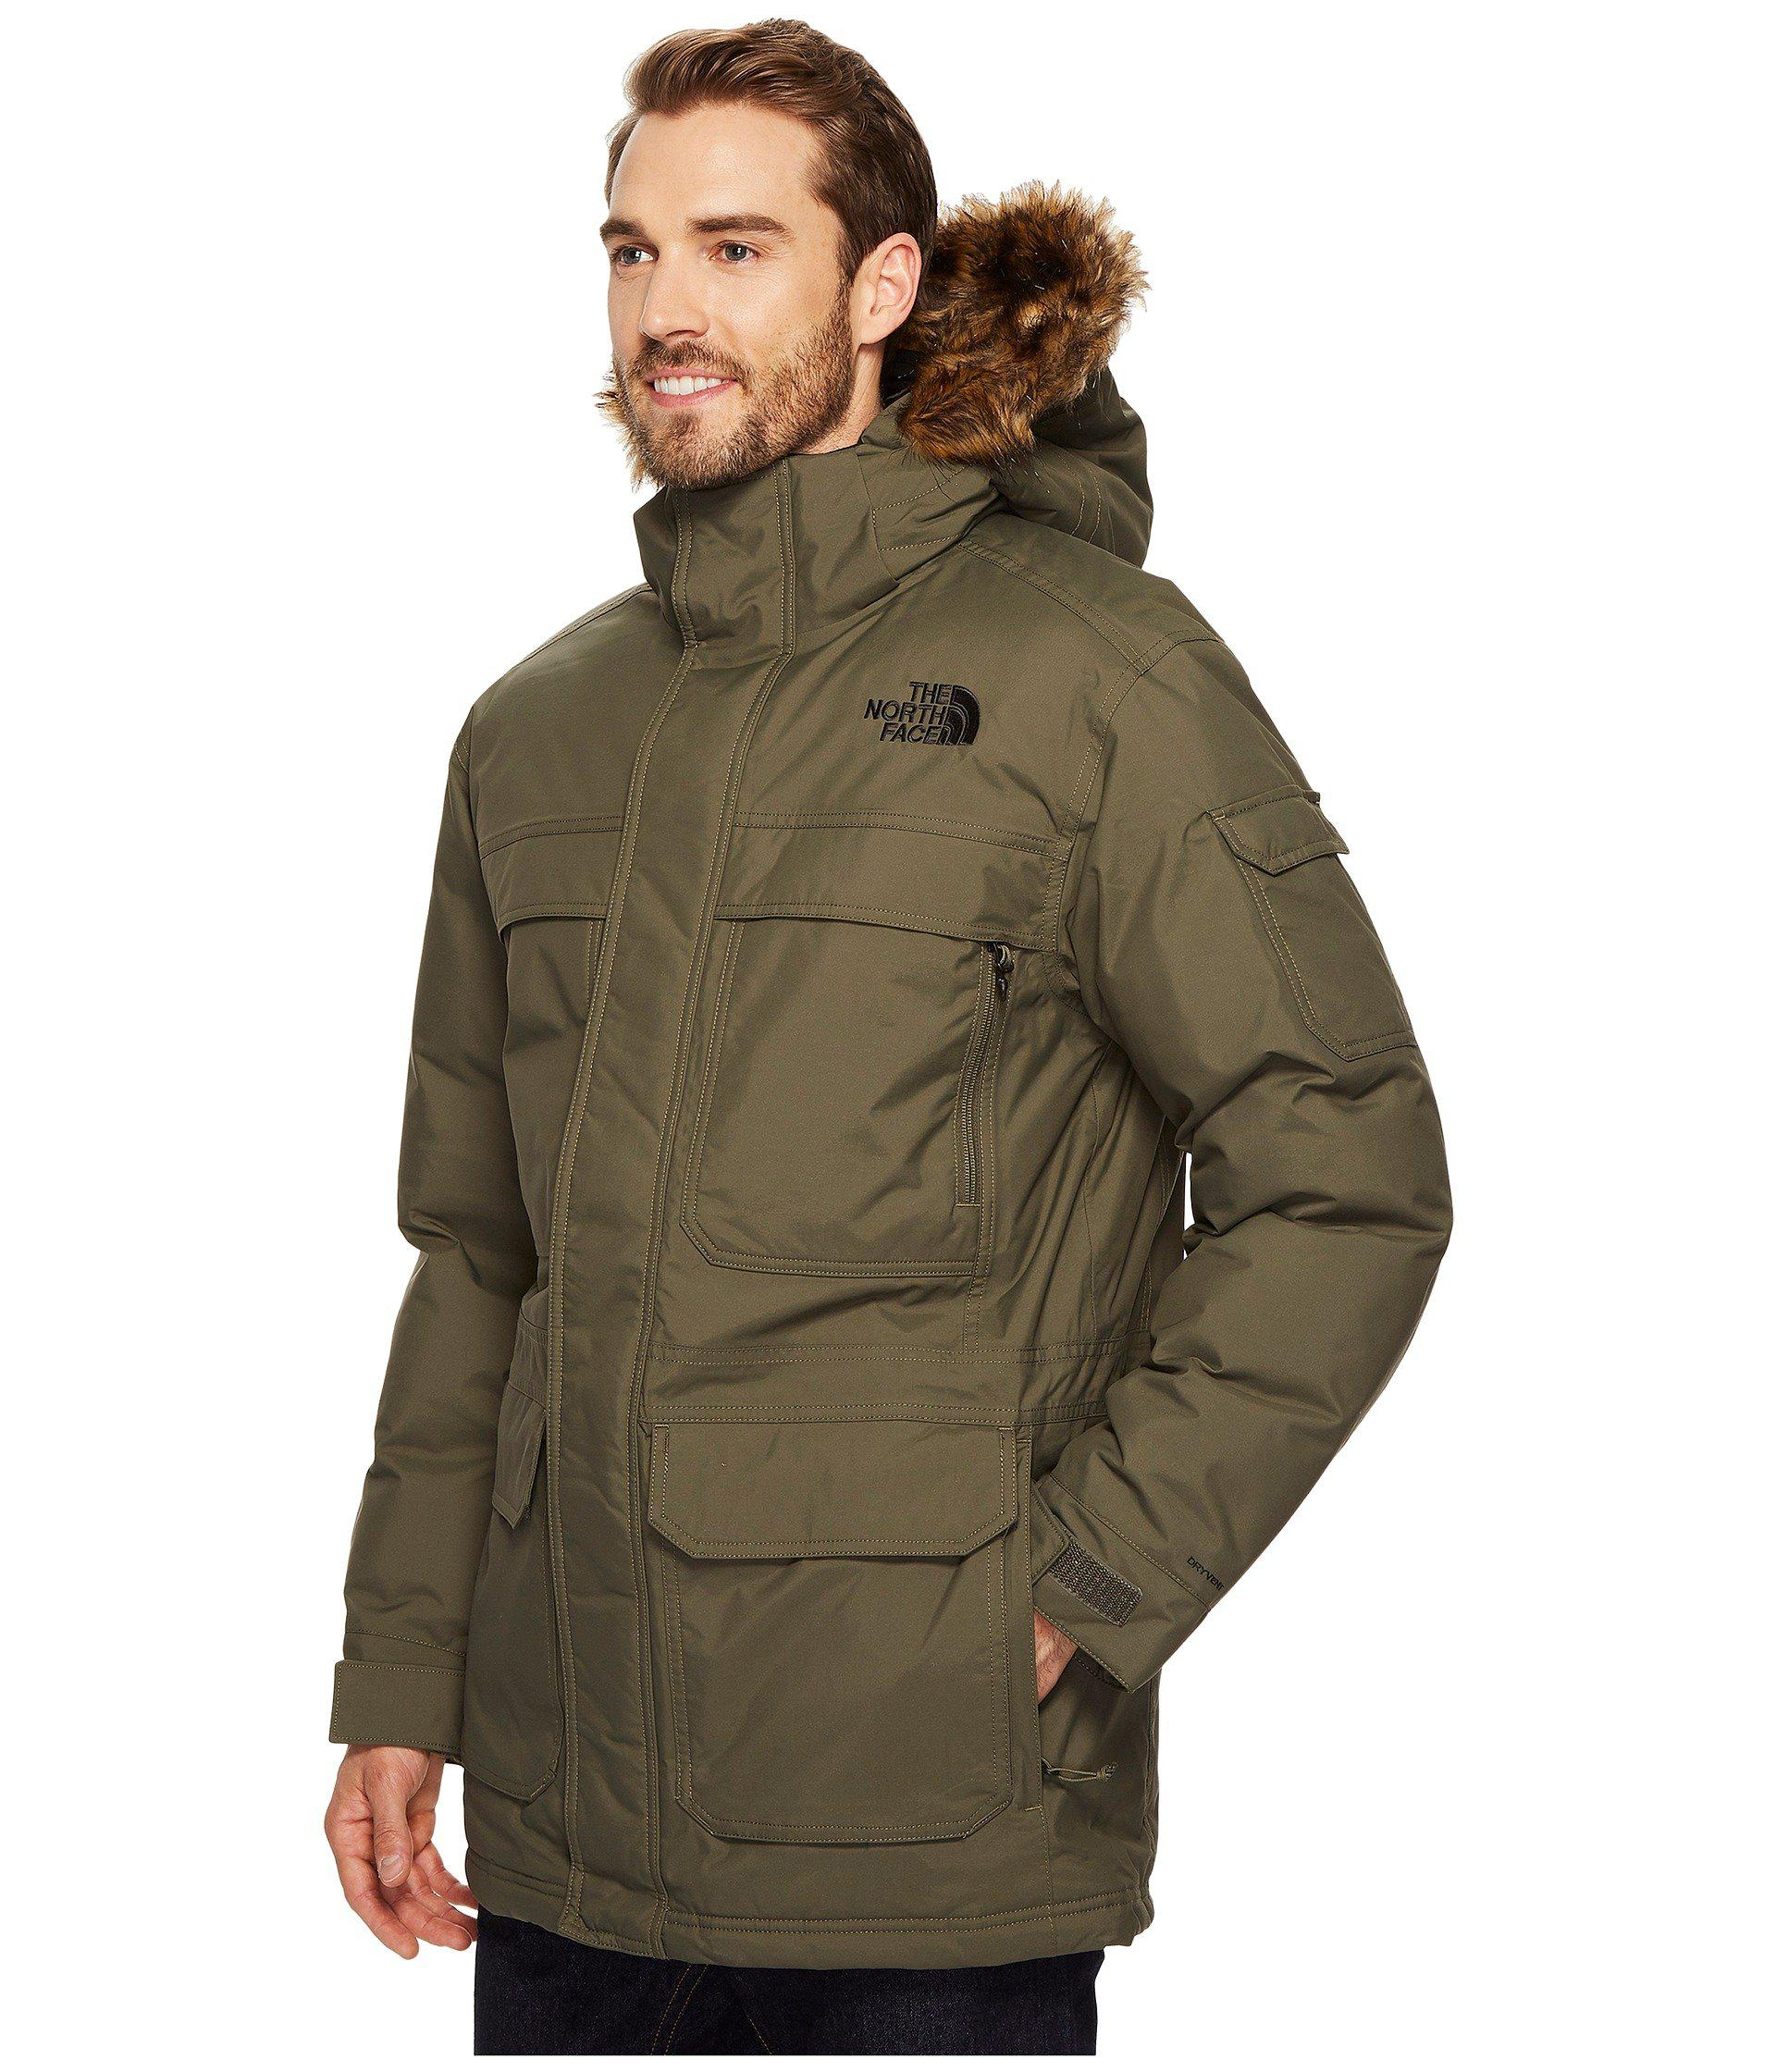 db527c0a35730 The North Face Mcmurdo Parka Iii in Green for Men - Lyst